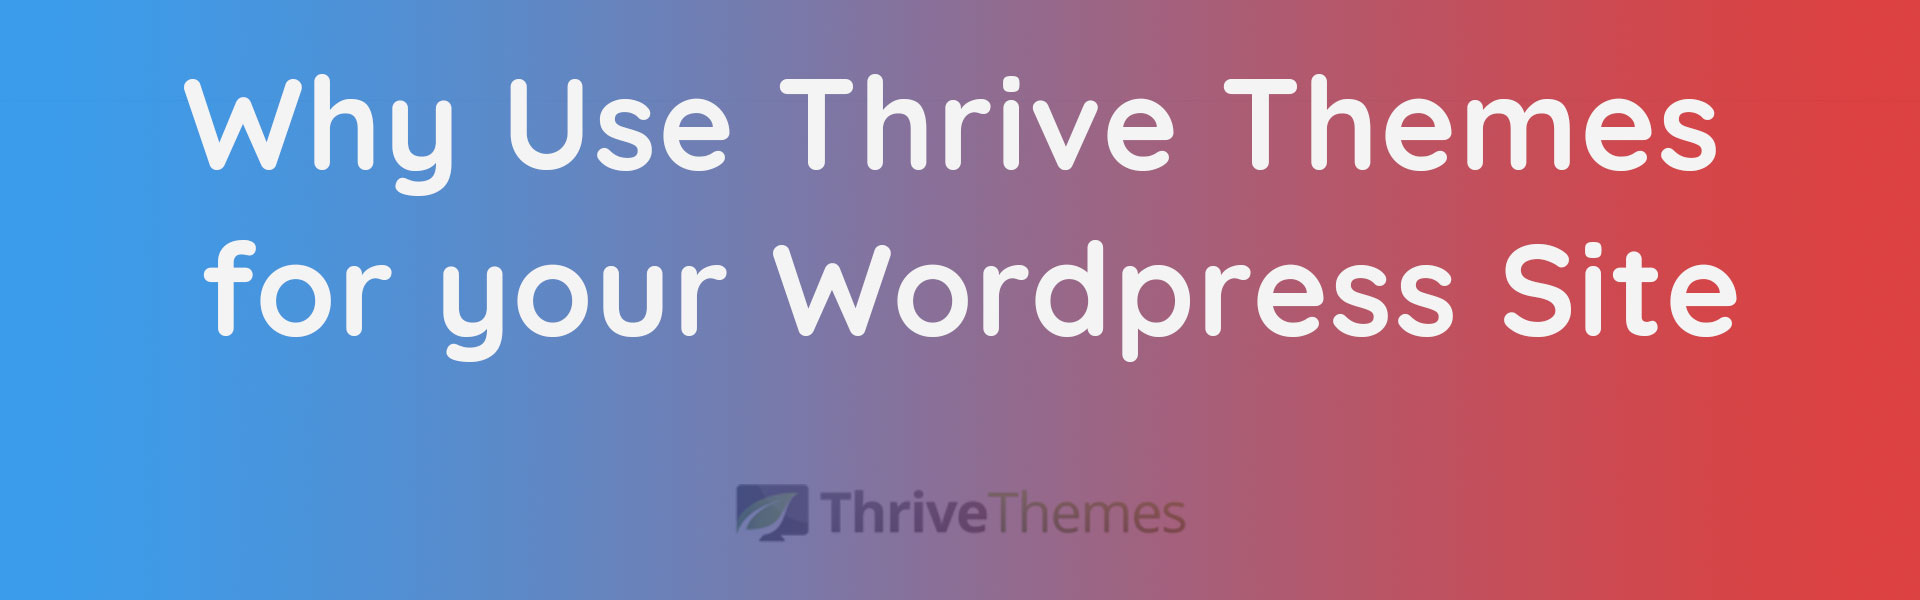 Buy Thrive Themes Price Used